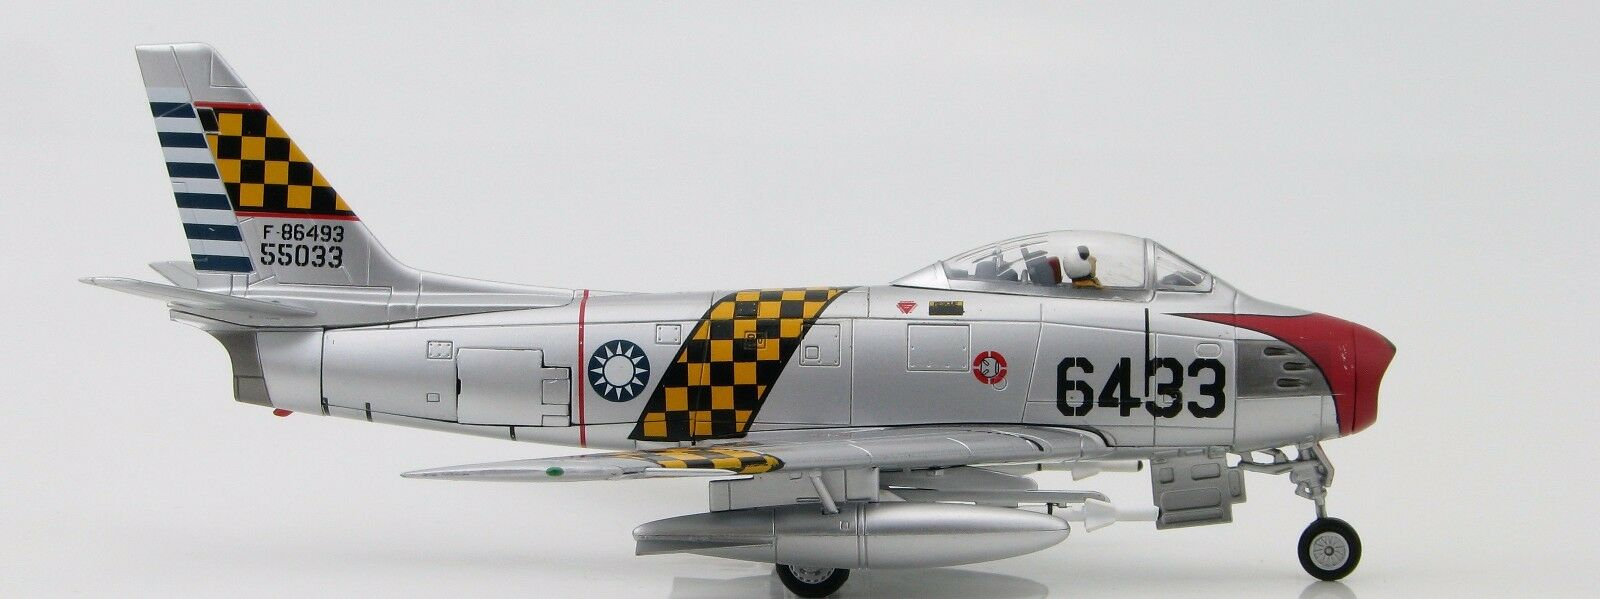 Hobby Master-F-86F Sabre Jet - 6433, 1st TFW, ROCAF -1 72 - Comme neuf & Boxed